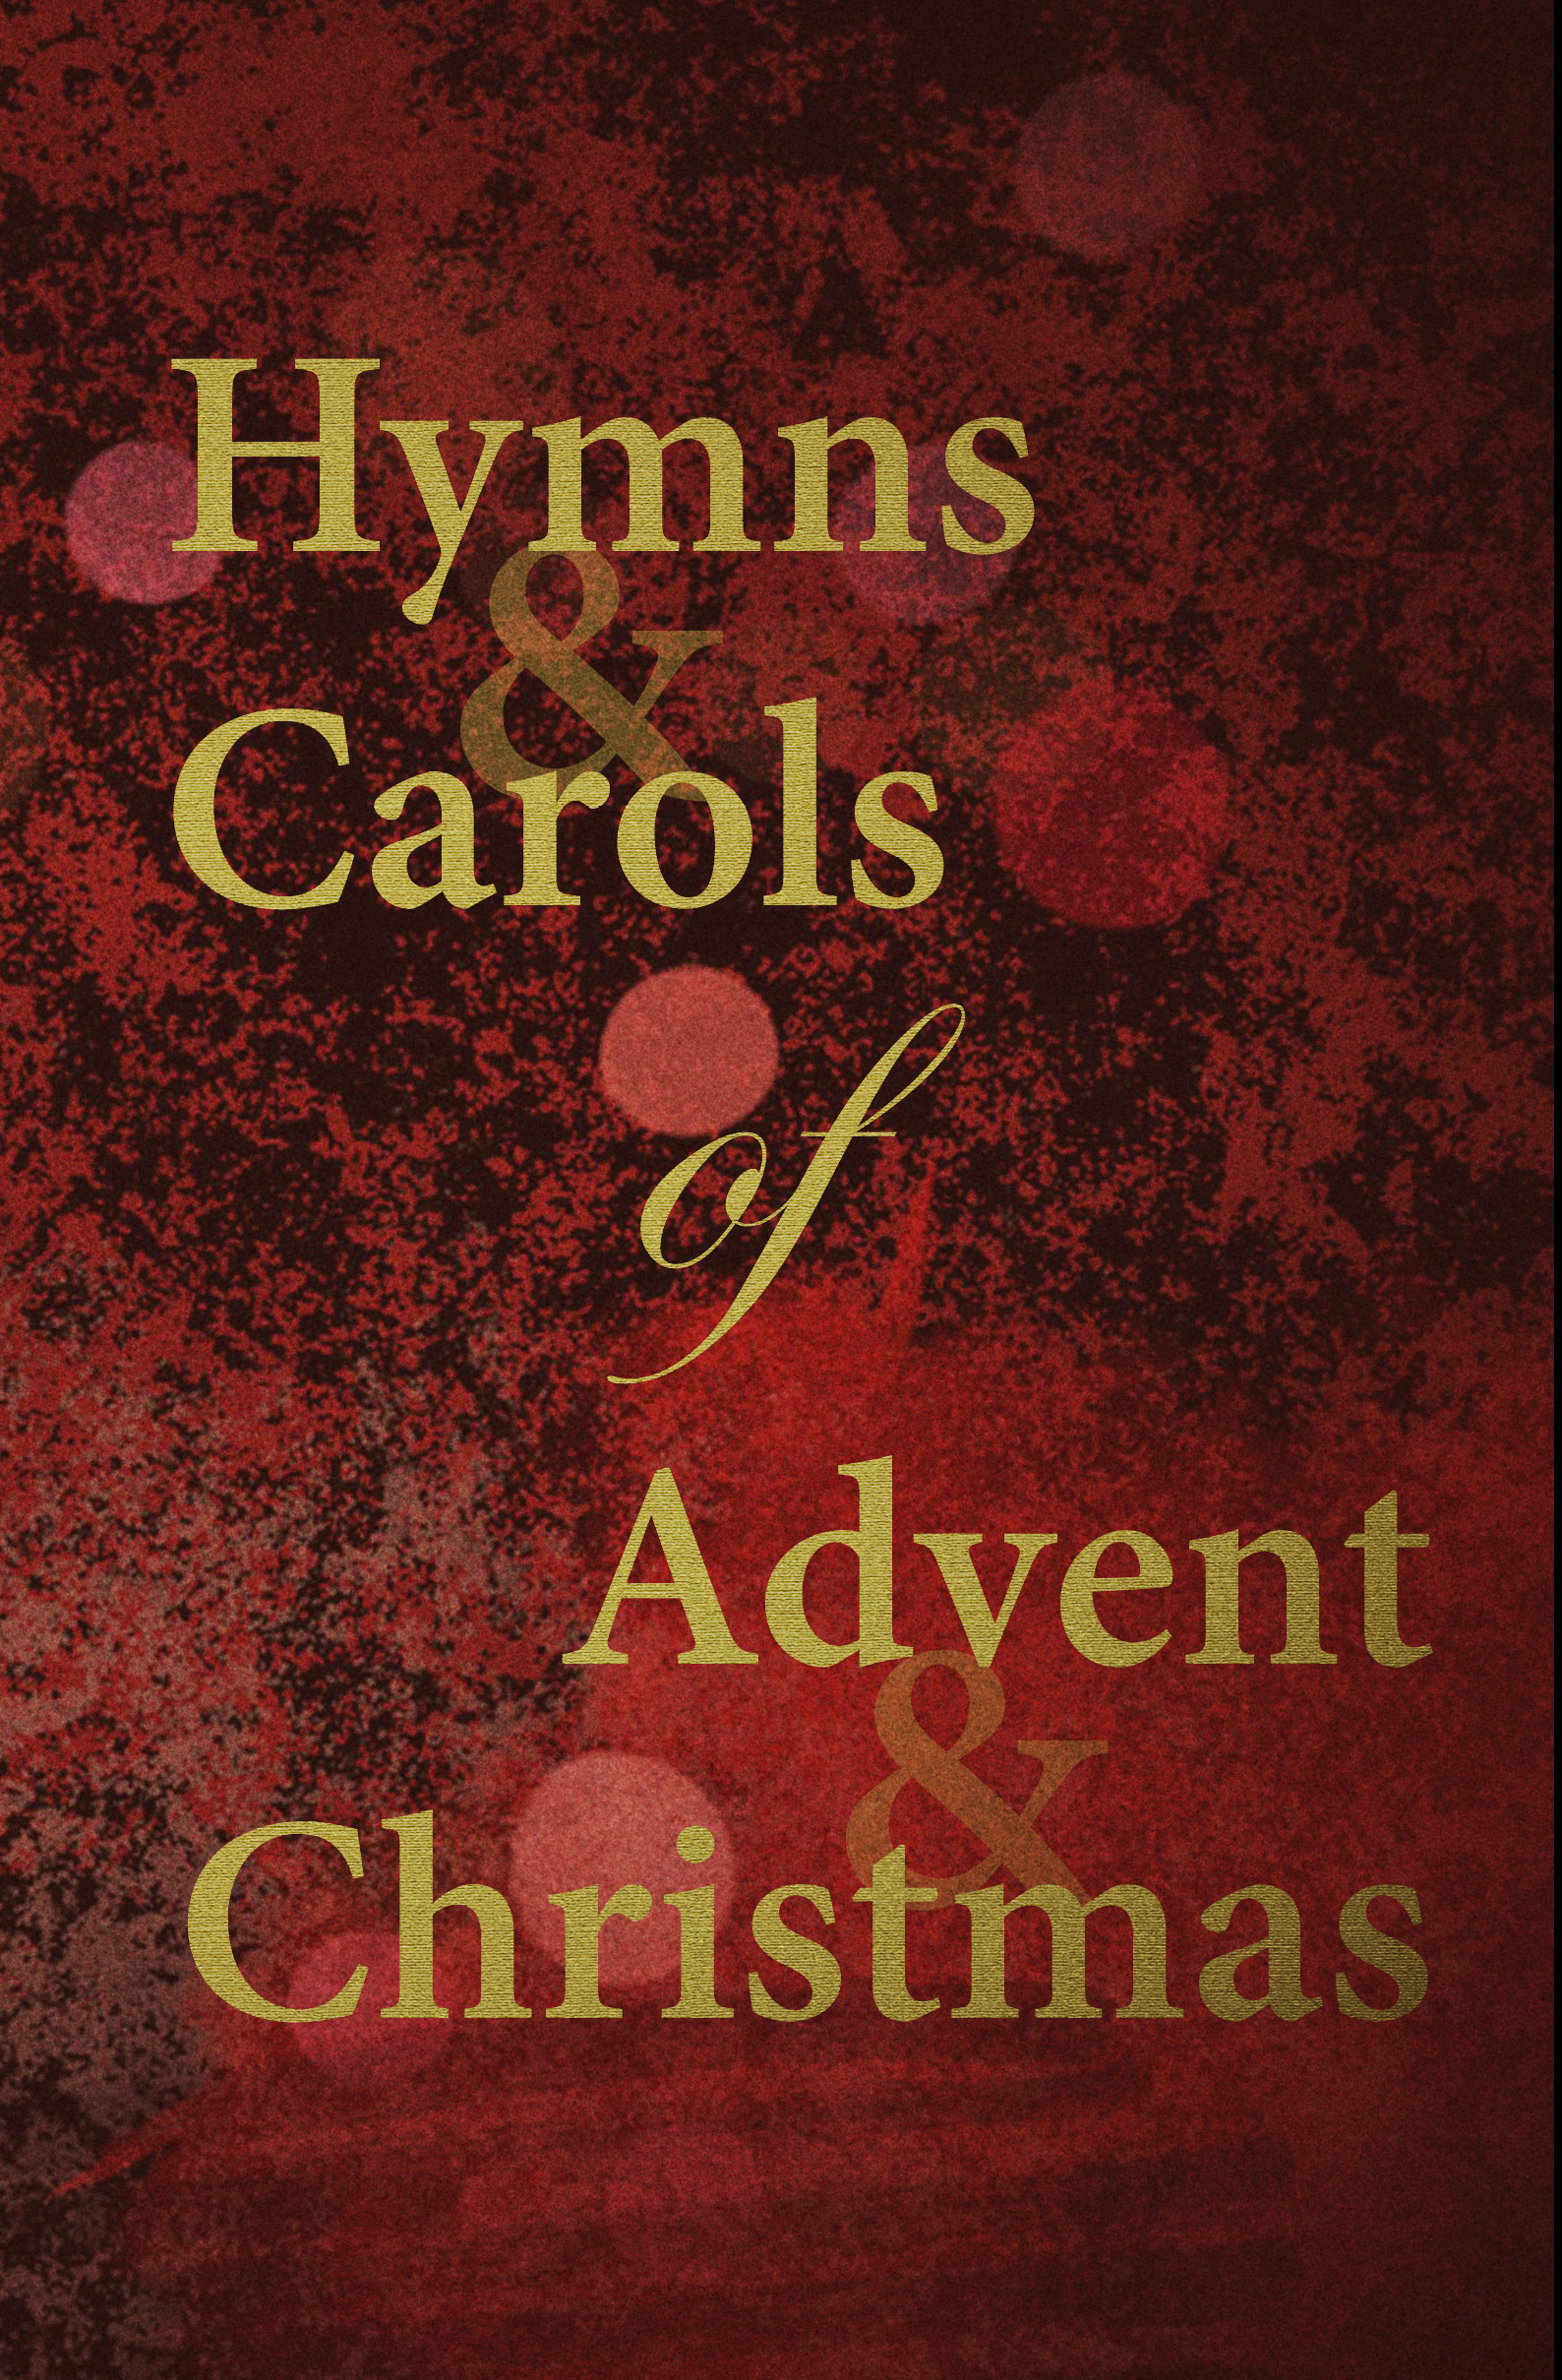 Two resources for your church or family during the Advent/Christmas season